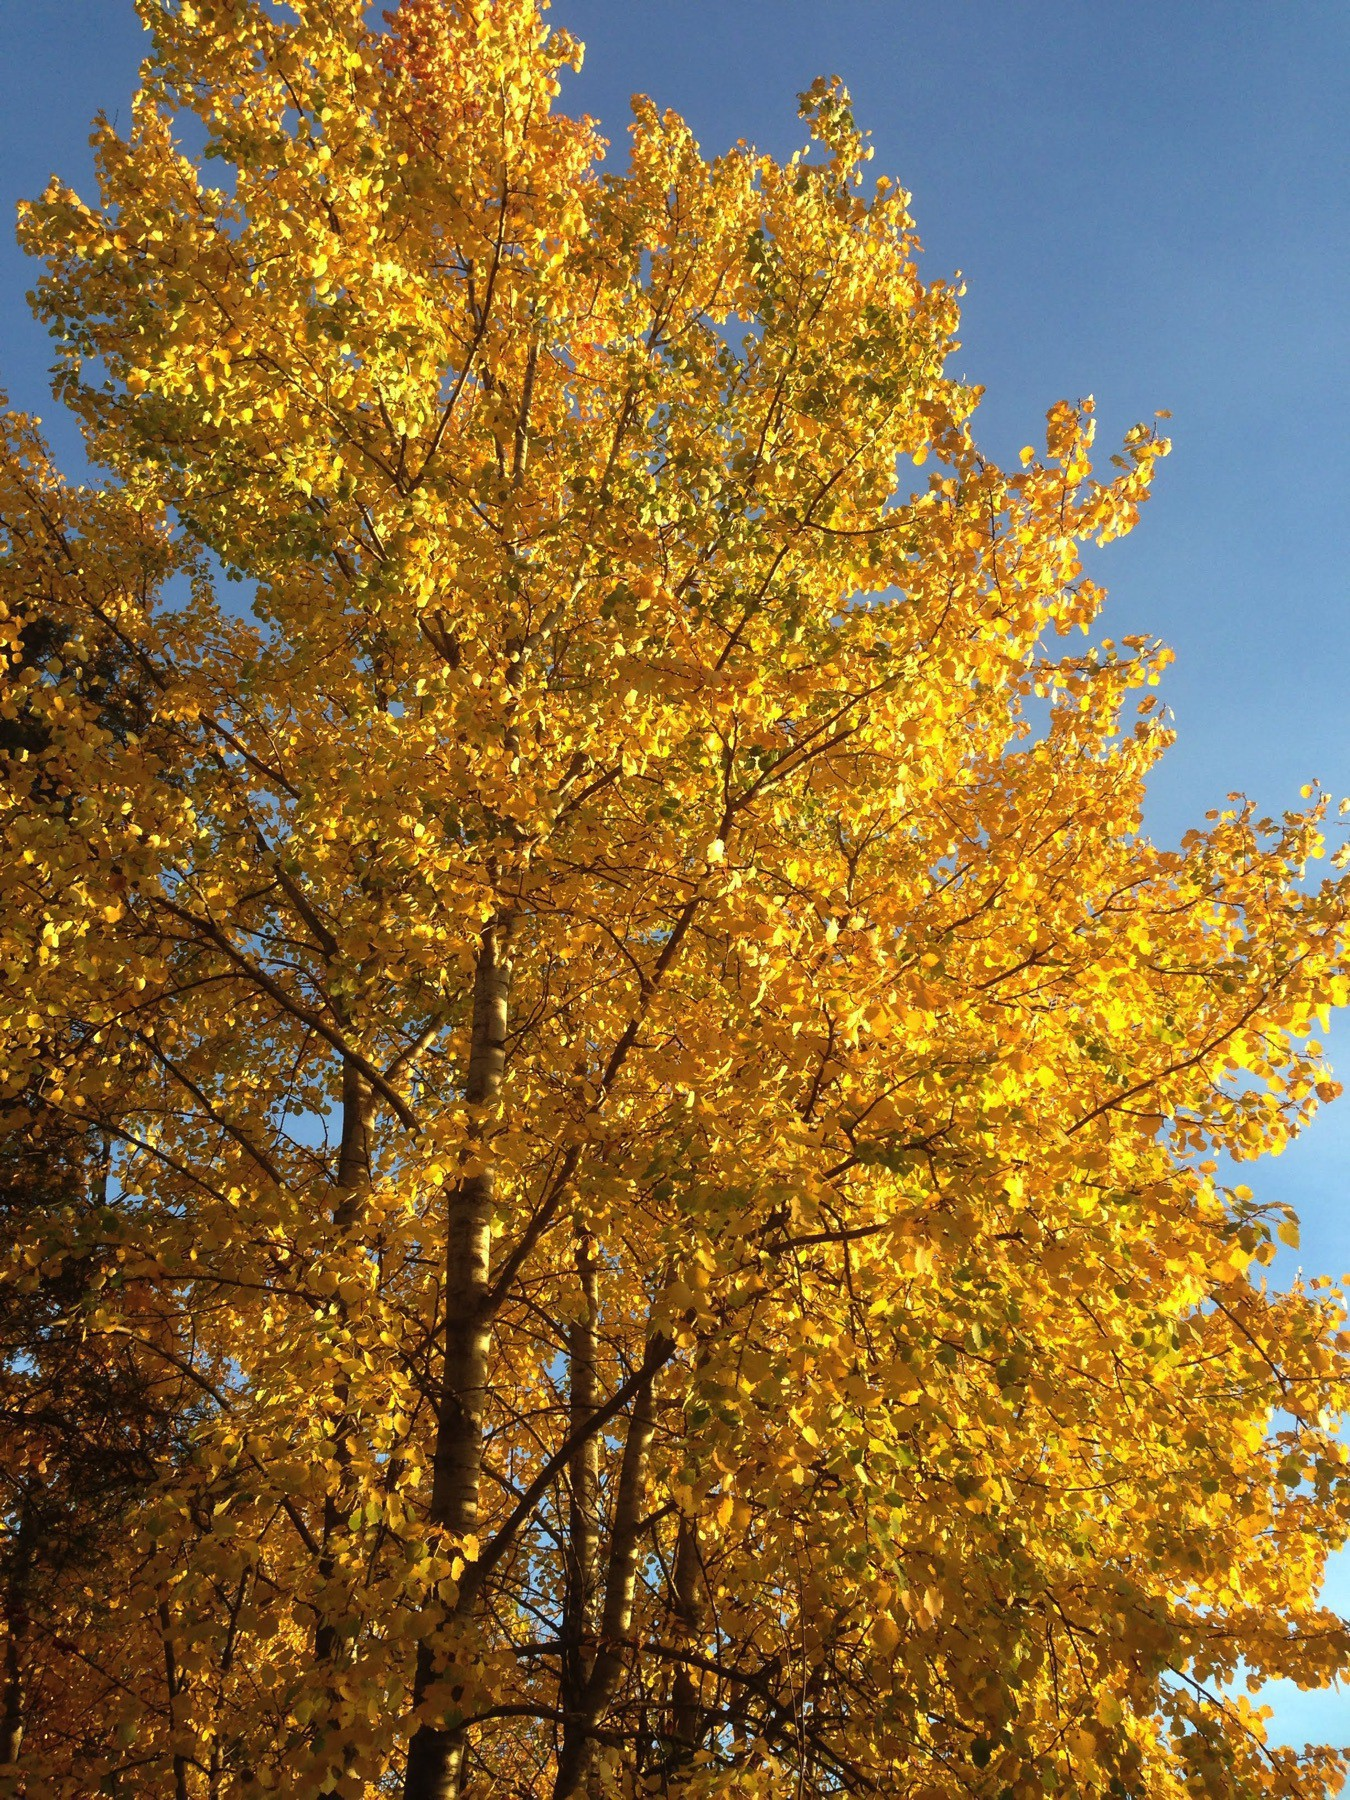 fall foliage, extremely yellow tree and crisp blue sky behind it